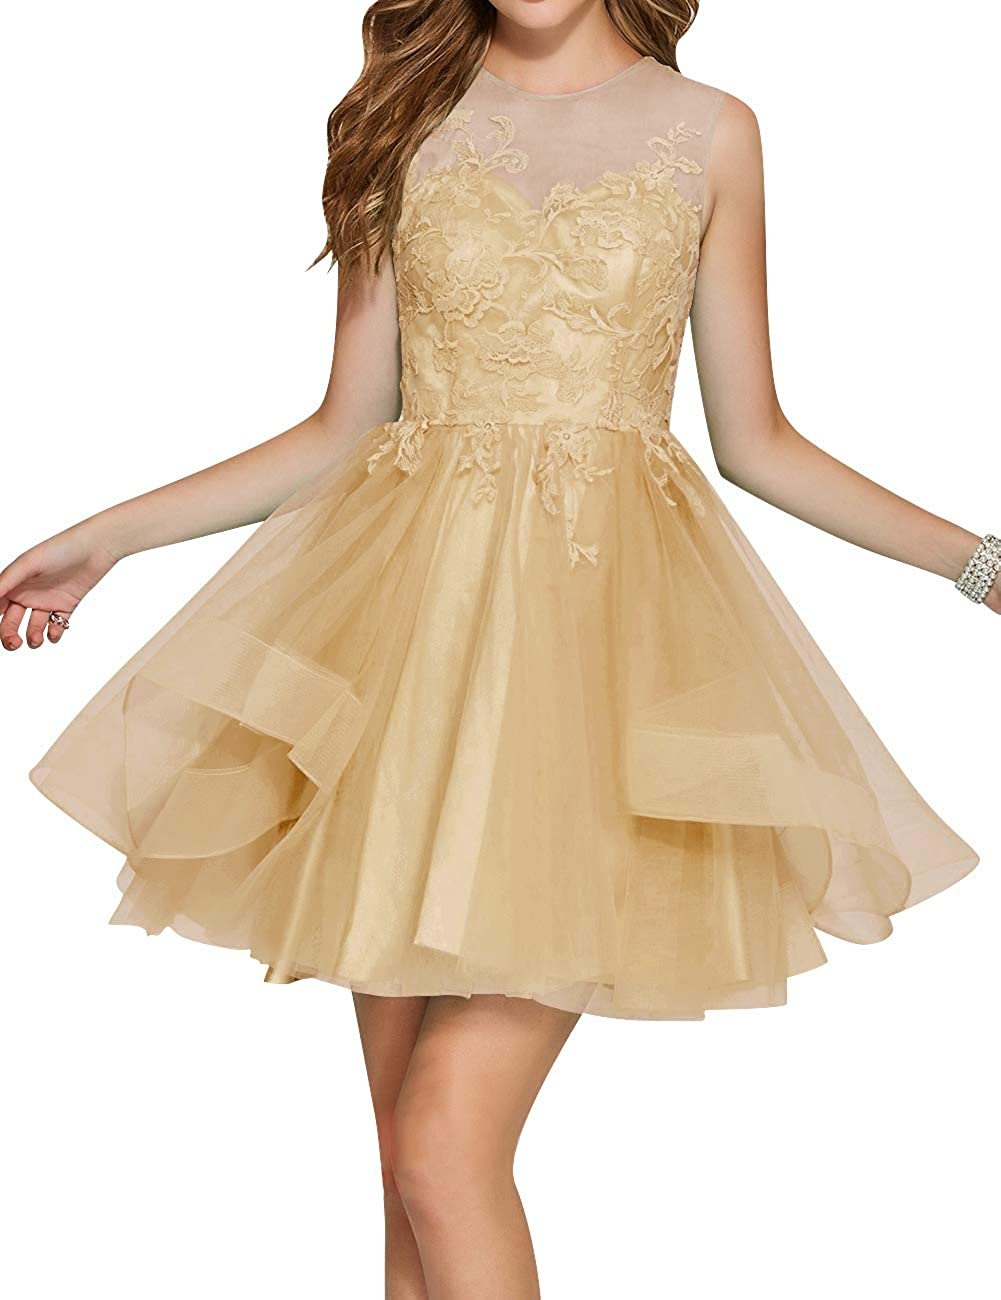 Champagne Uther Junior Tulle Prom Homecoming Cocktail Dresses Short Scoop Neck Bridesmaid Dress